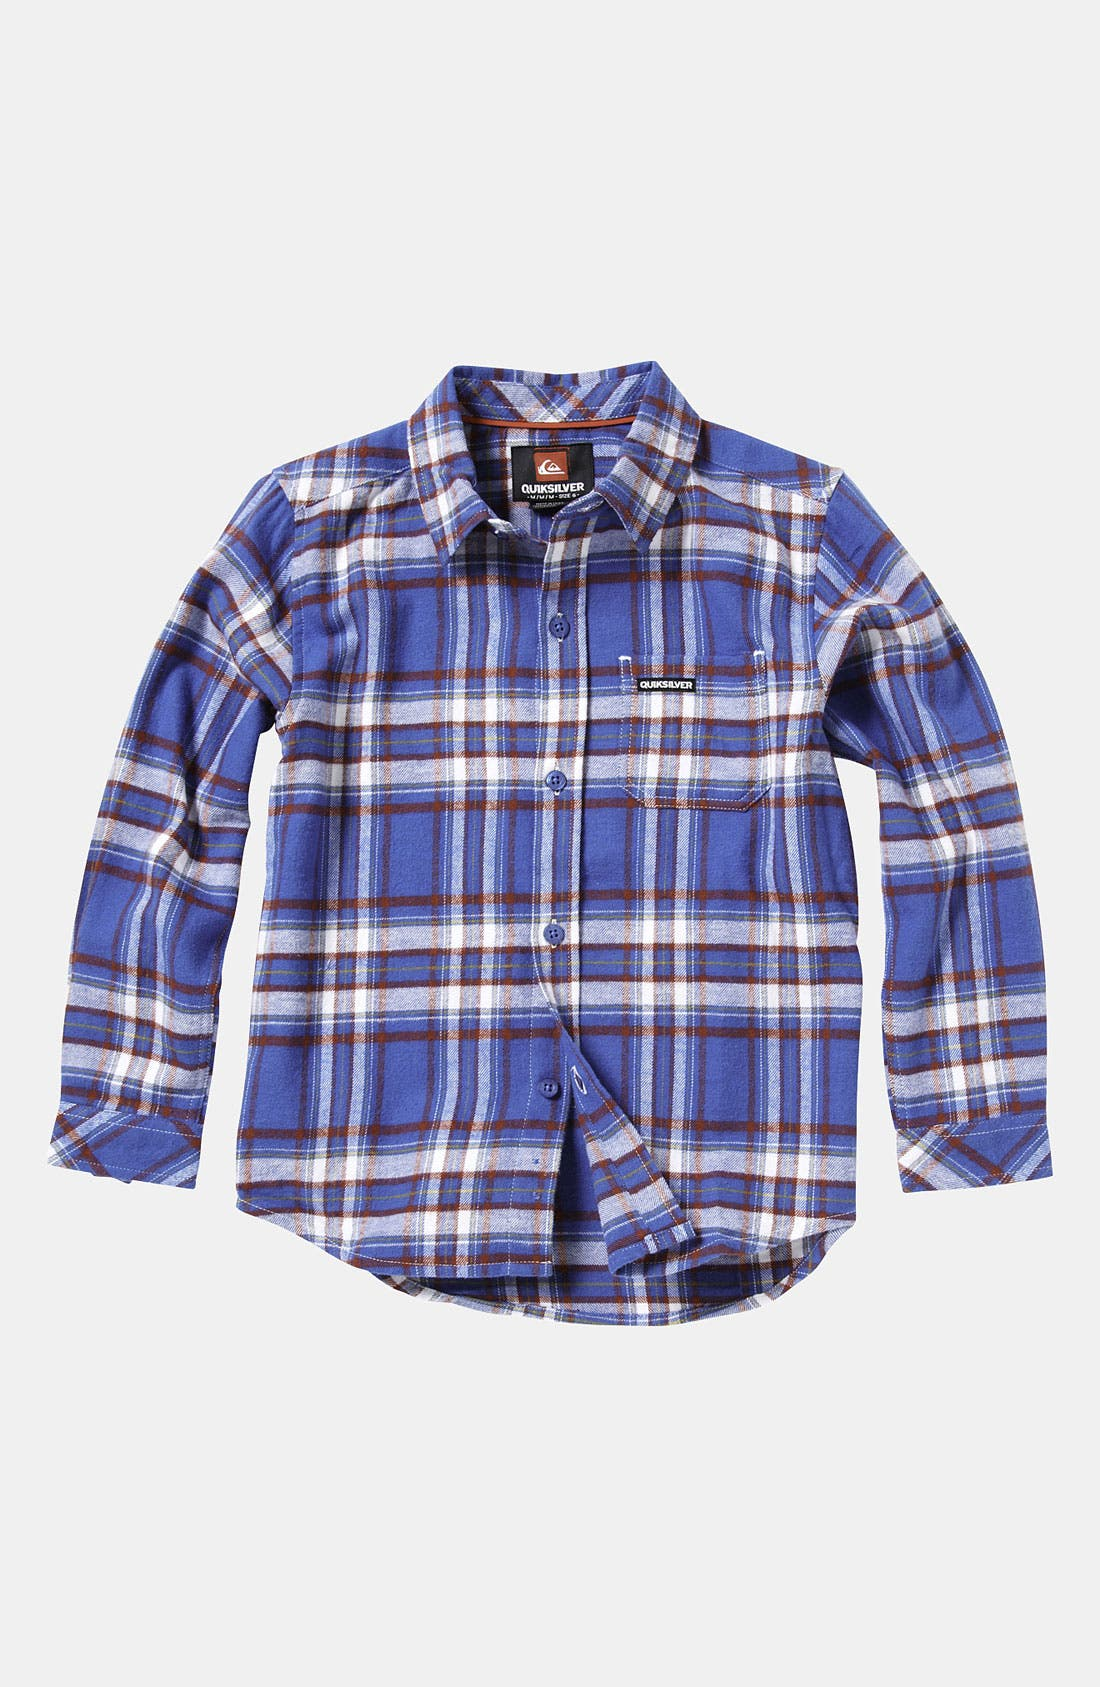 Alternate Image 1 Selected - Quiksilver 'Bunga Bunga' Woven Shirt (Little Boys)